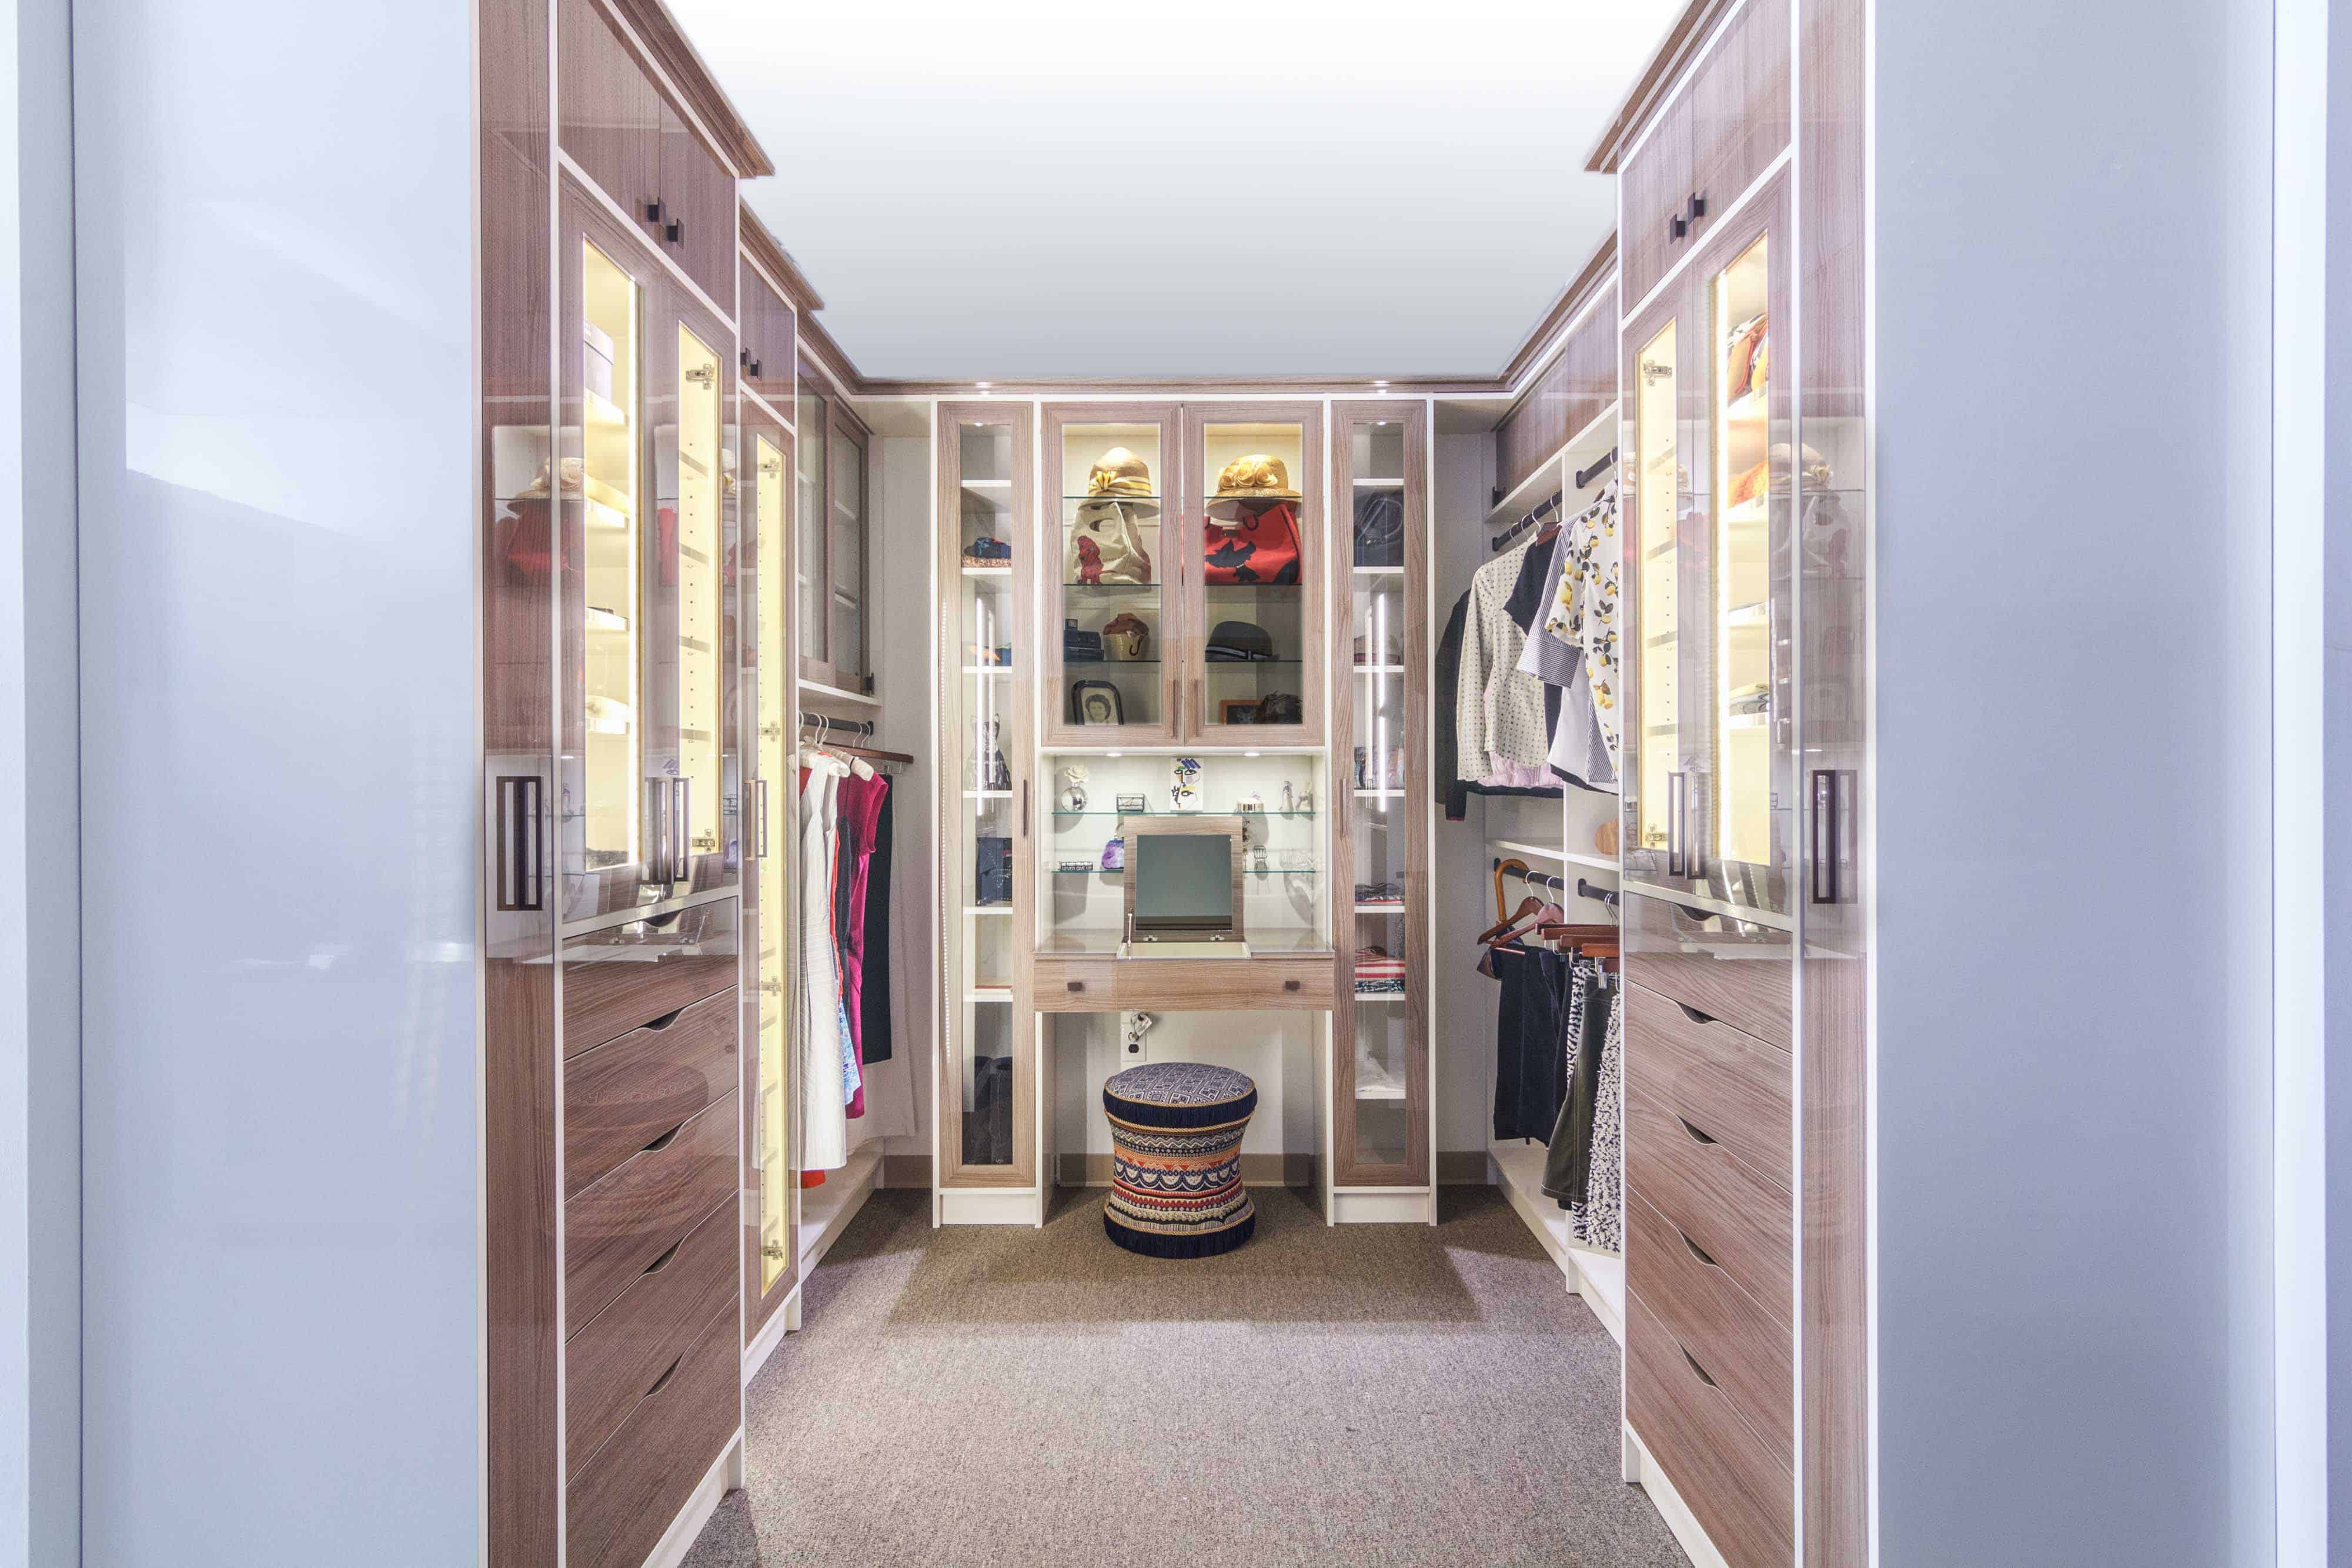 Glamorous walk-in closet with glass-faced storage cabinets, built-in vanity and plenty of apparel storage by Closet Works.